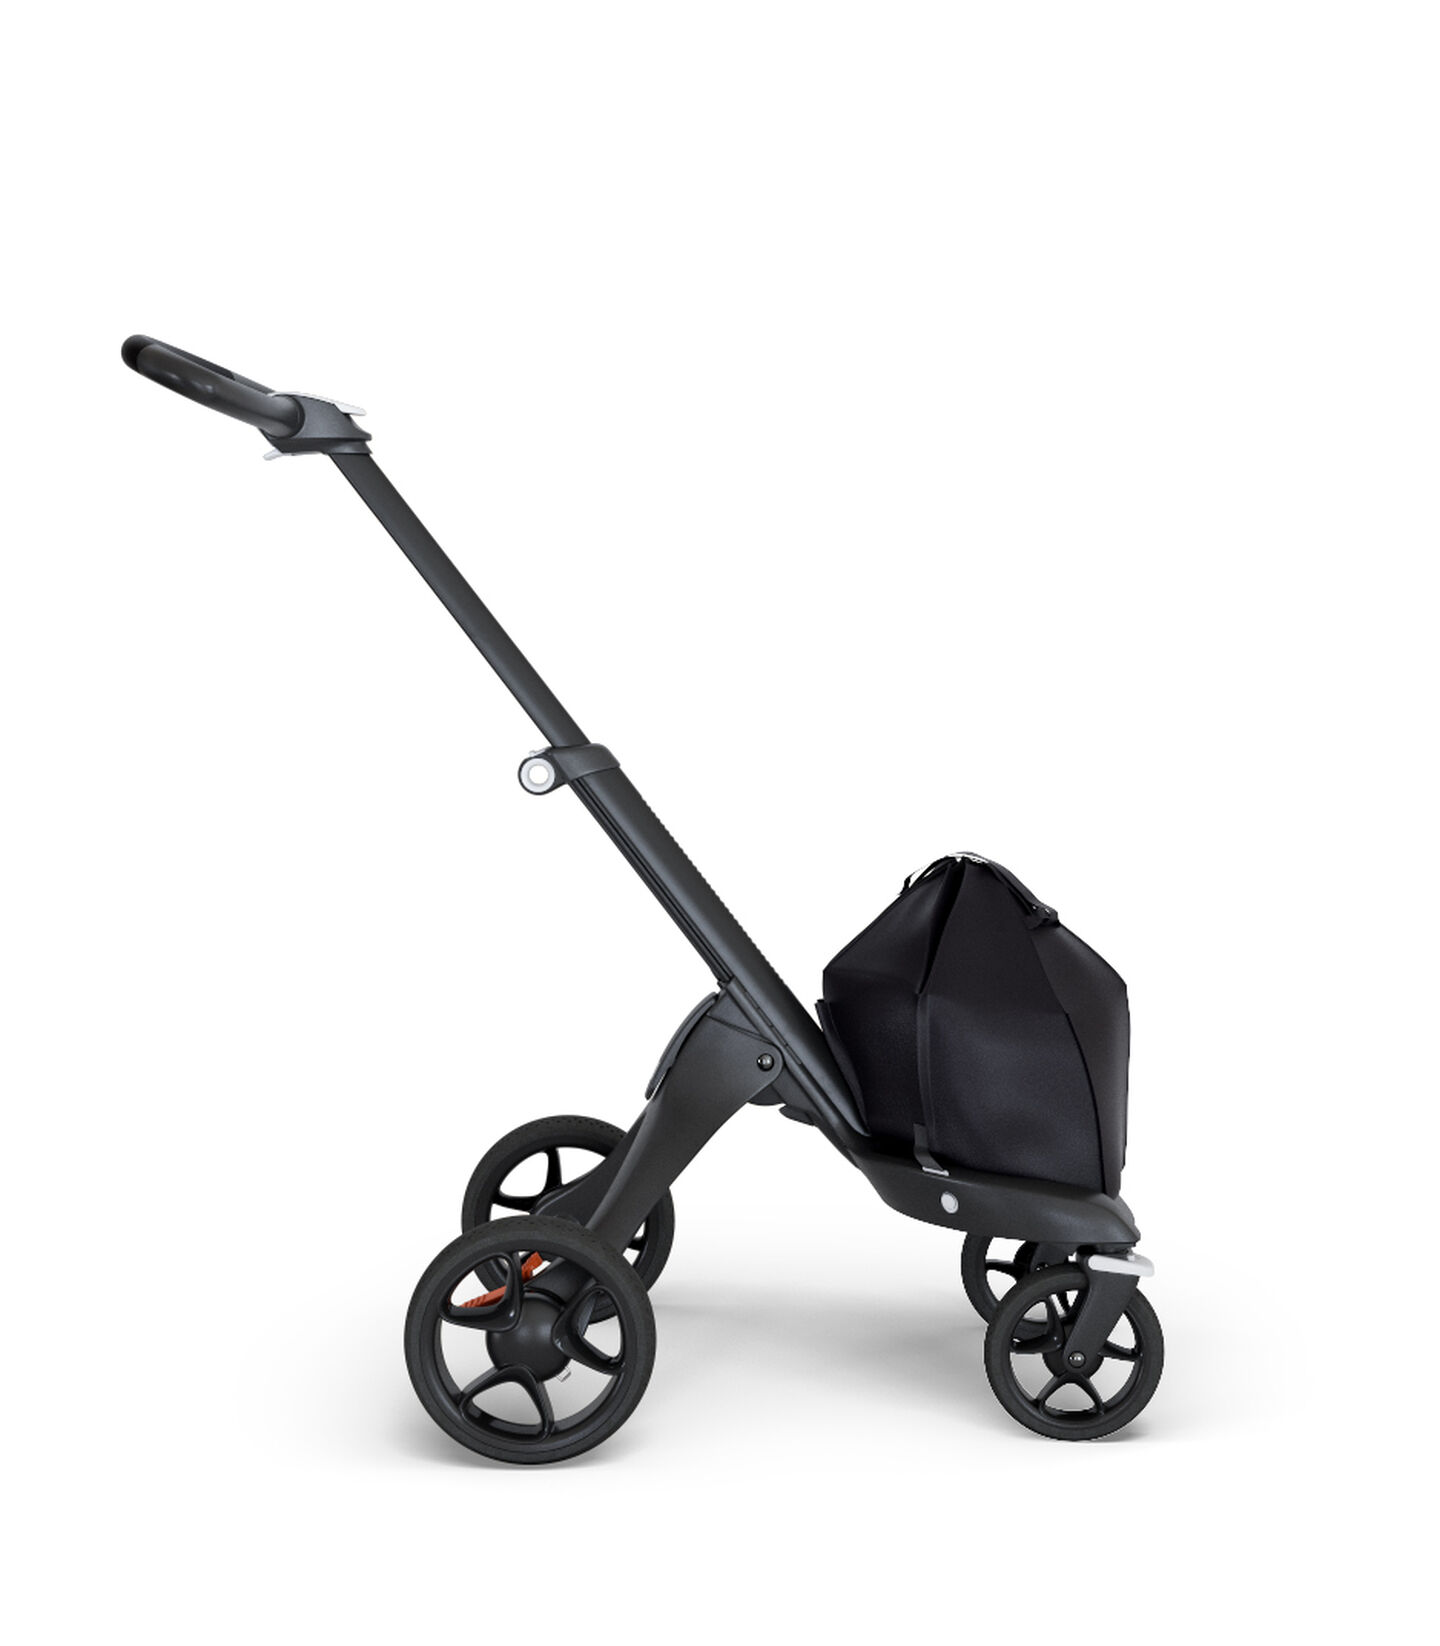 Stokke® Xplory® 6 Chassis Black - Black Handle, Black, mainview